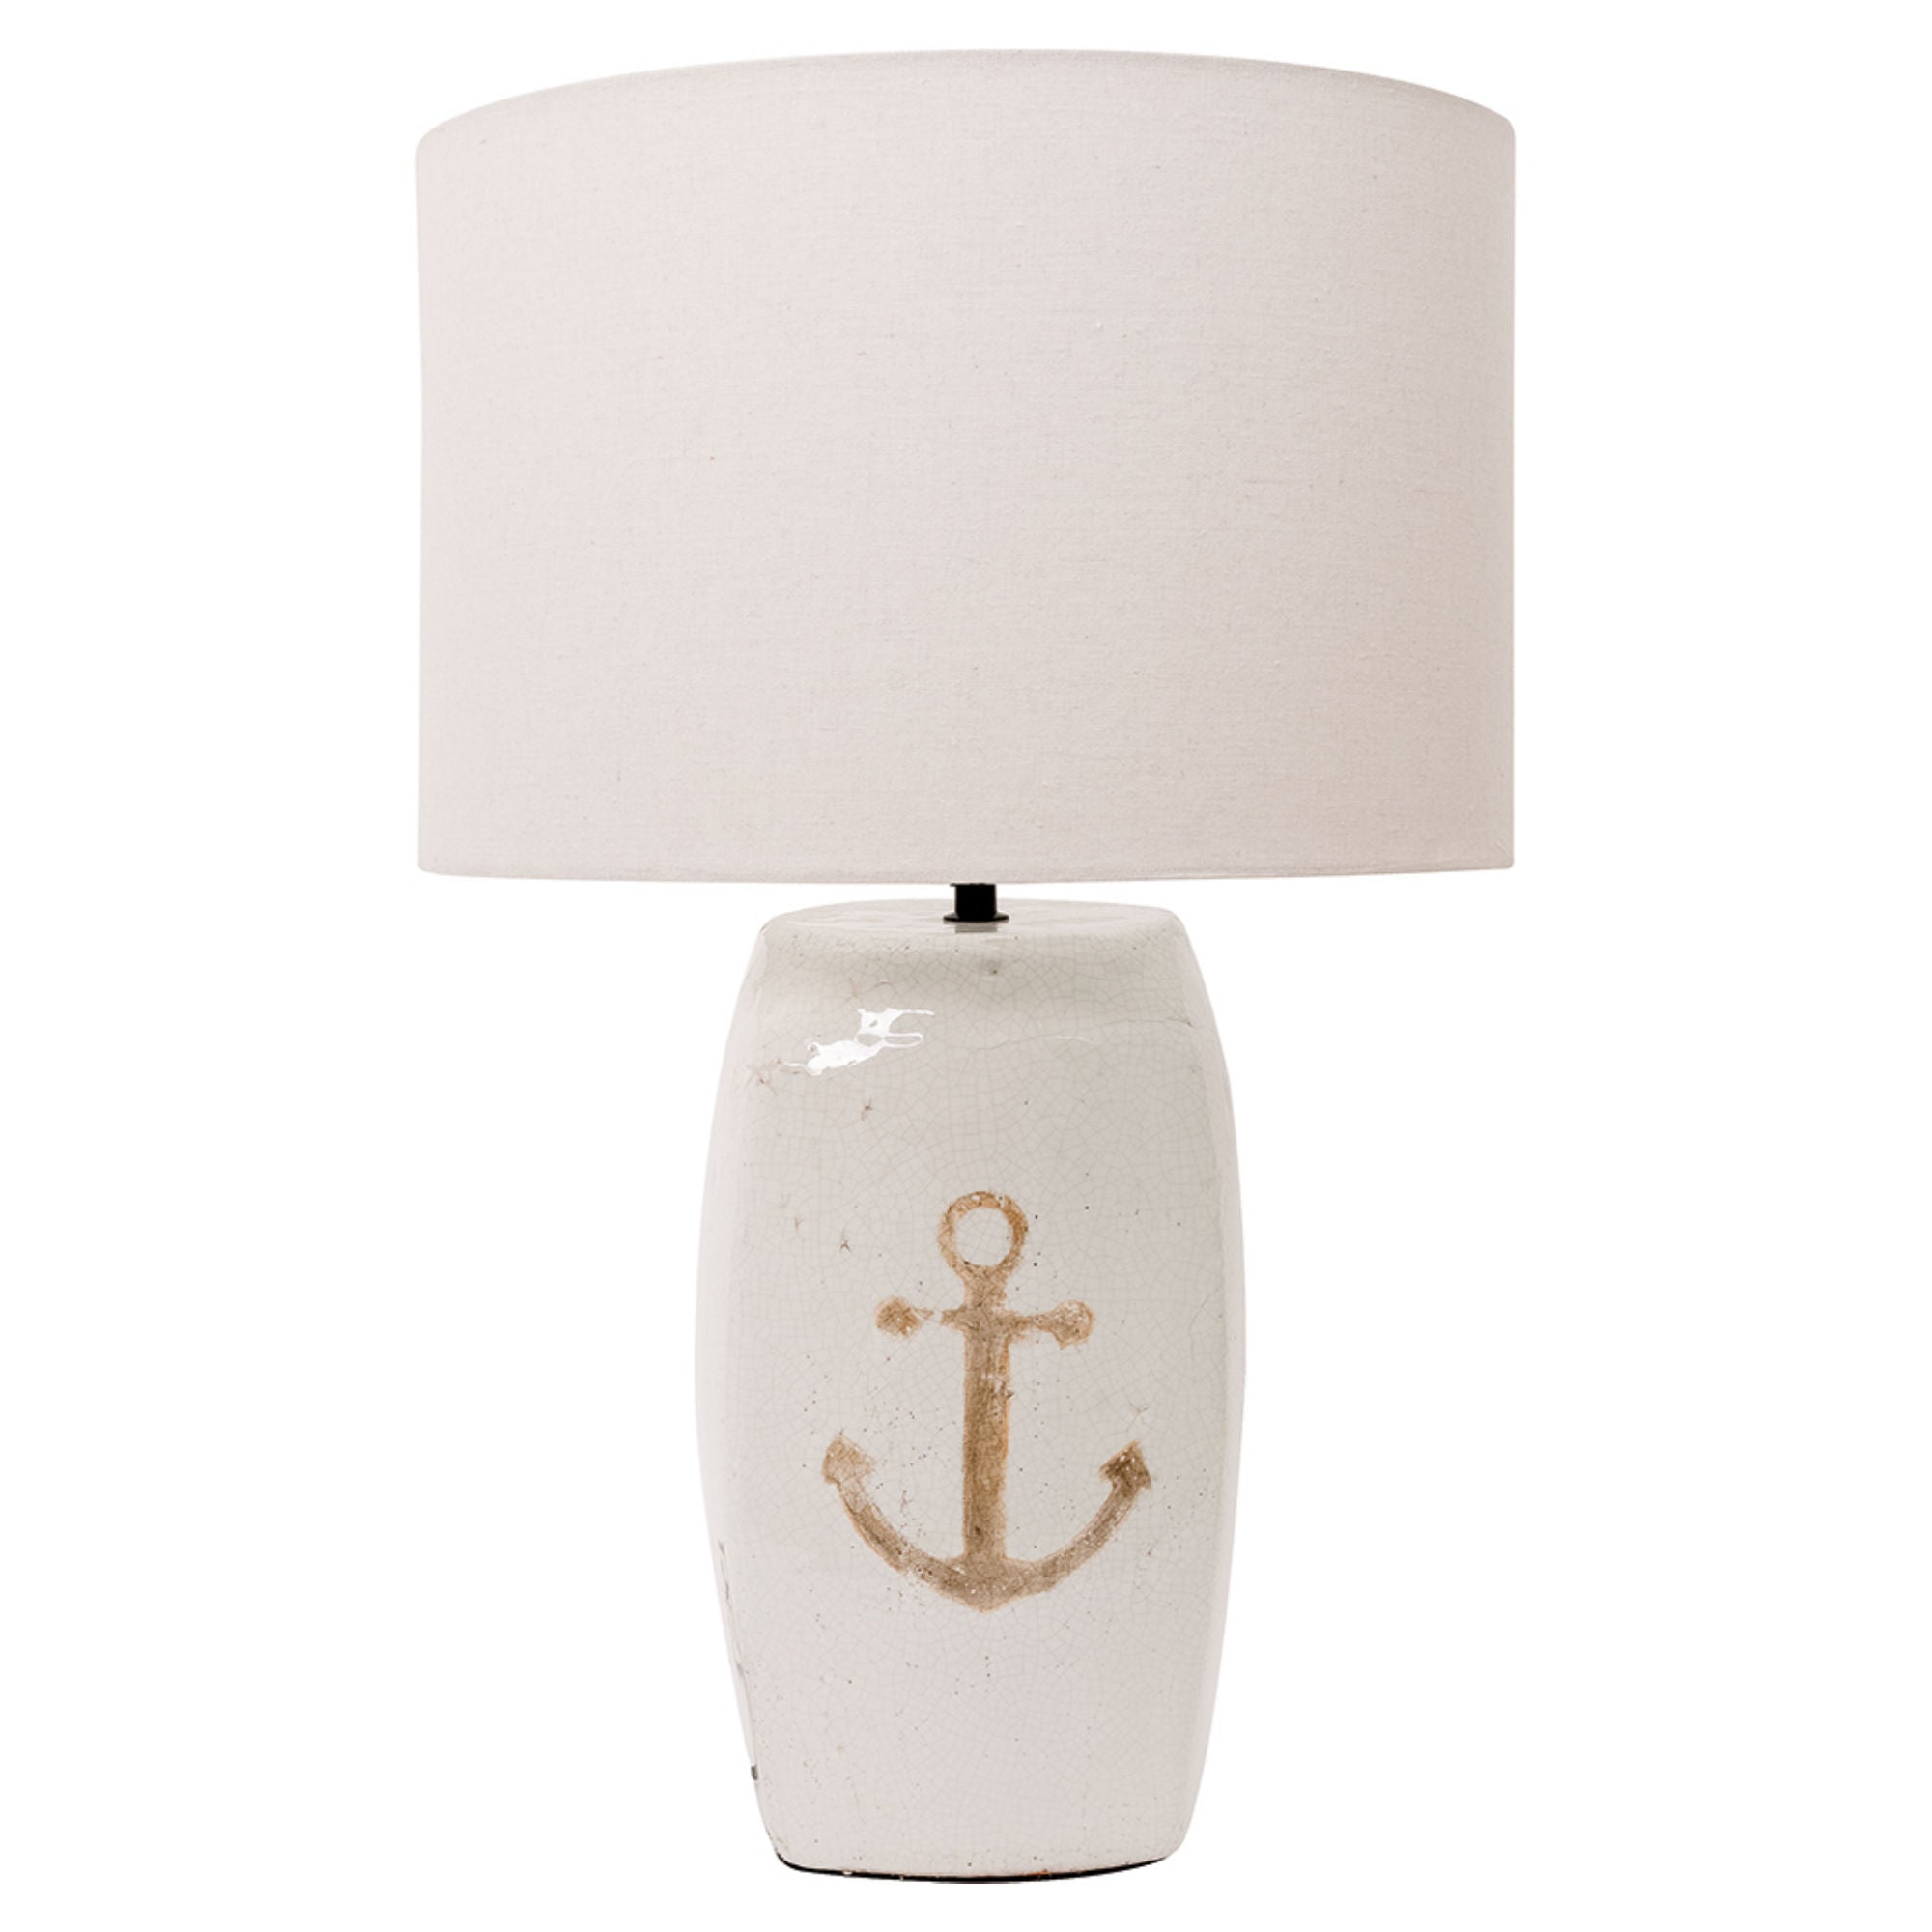 Batela Giftware-Lamp-Anchor Table Lamp with Glazed Cement Base